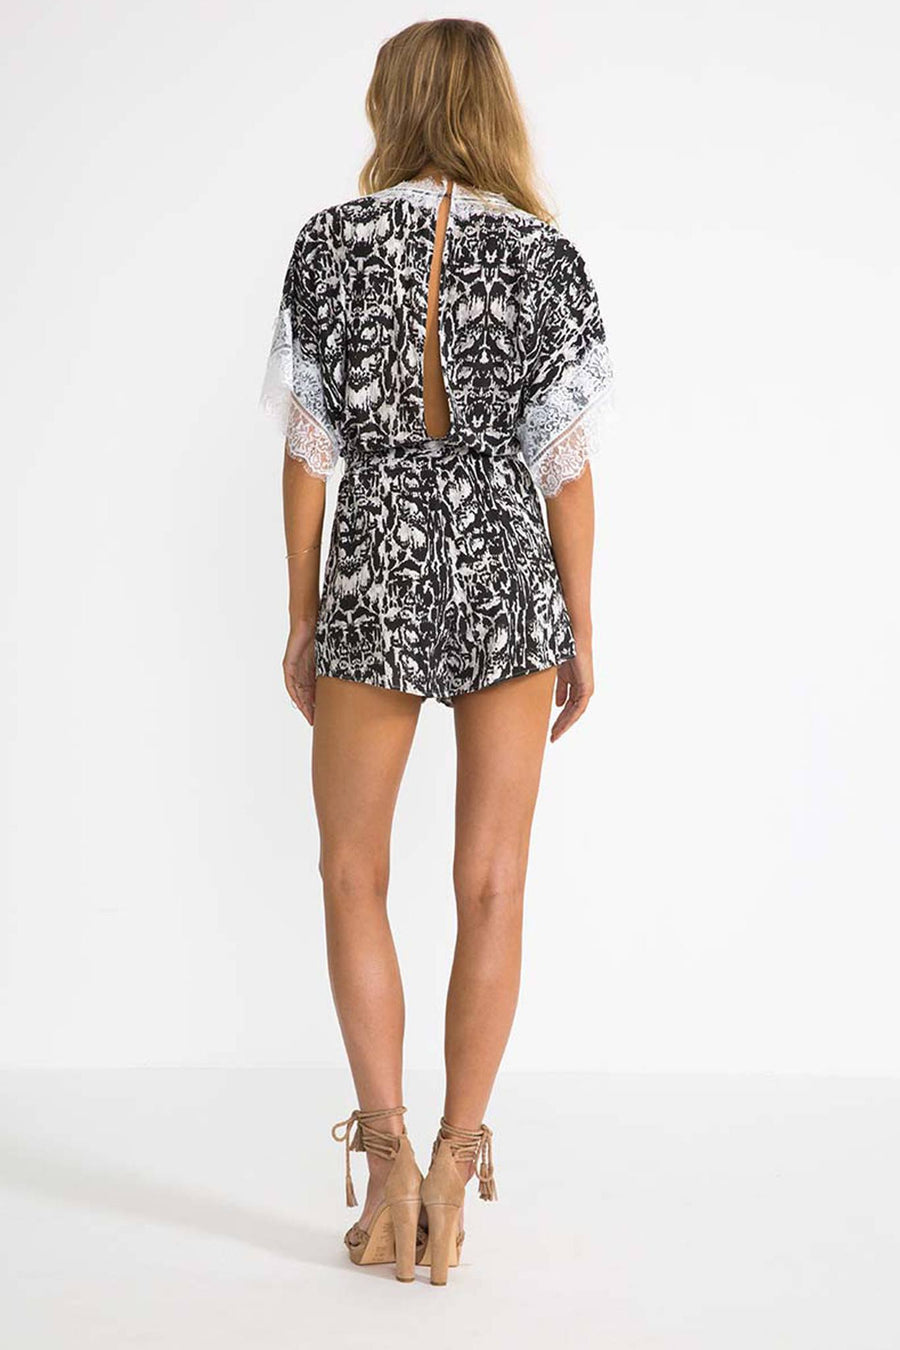 wild-thing-playsuit-by-suboo